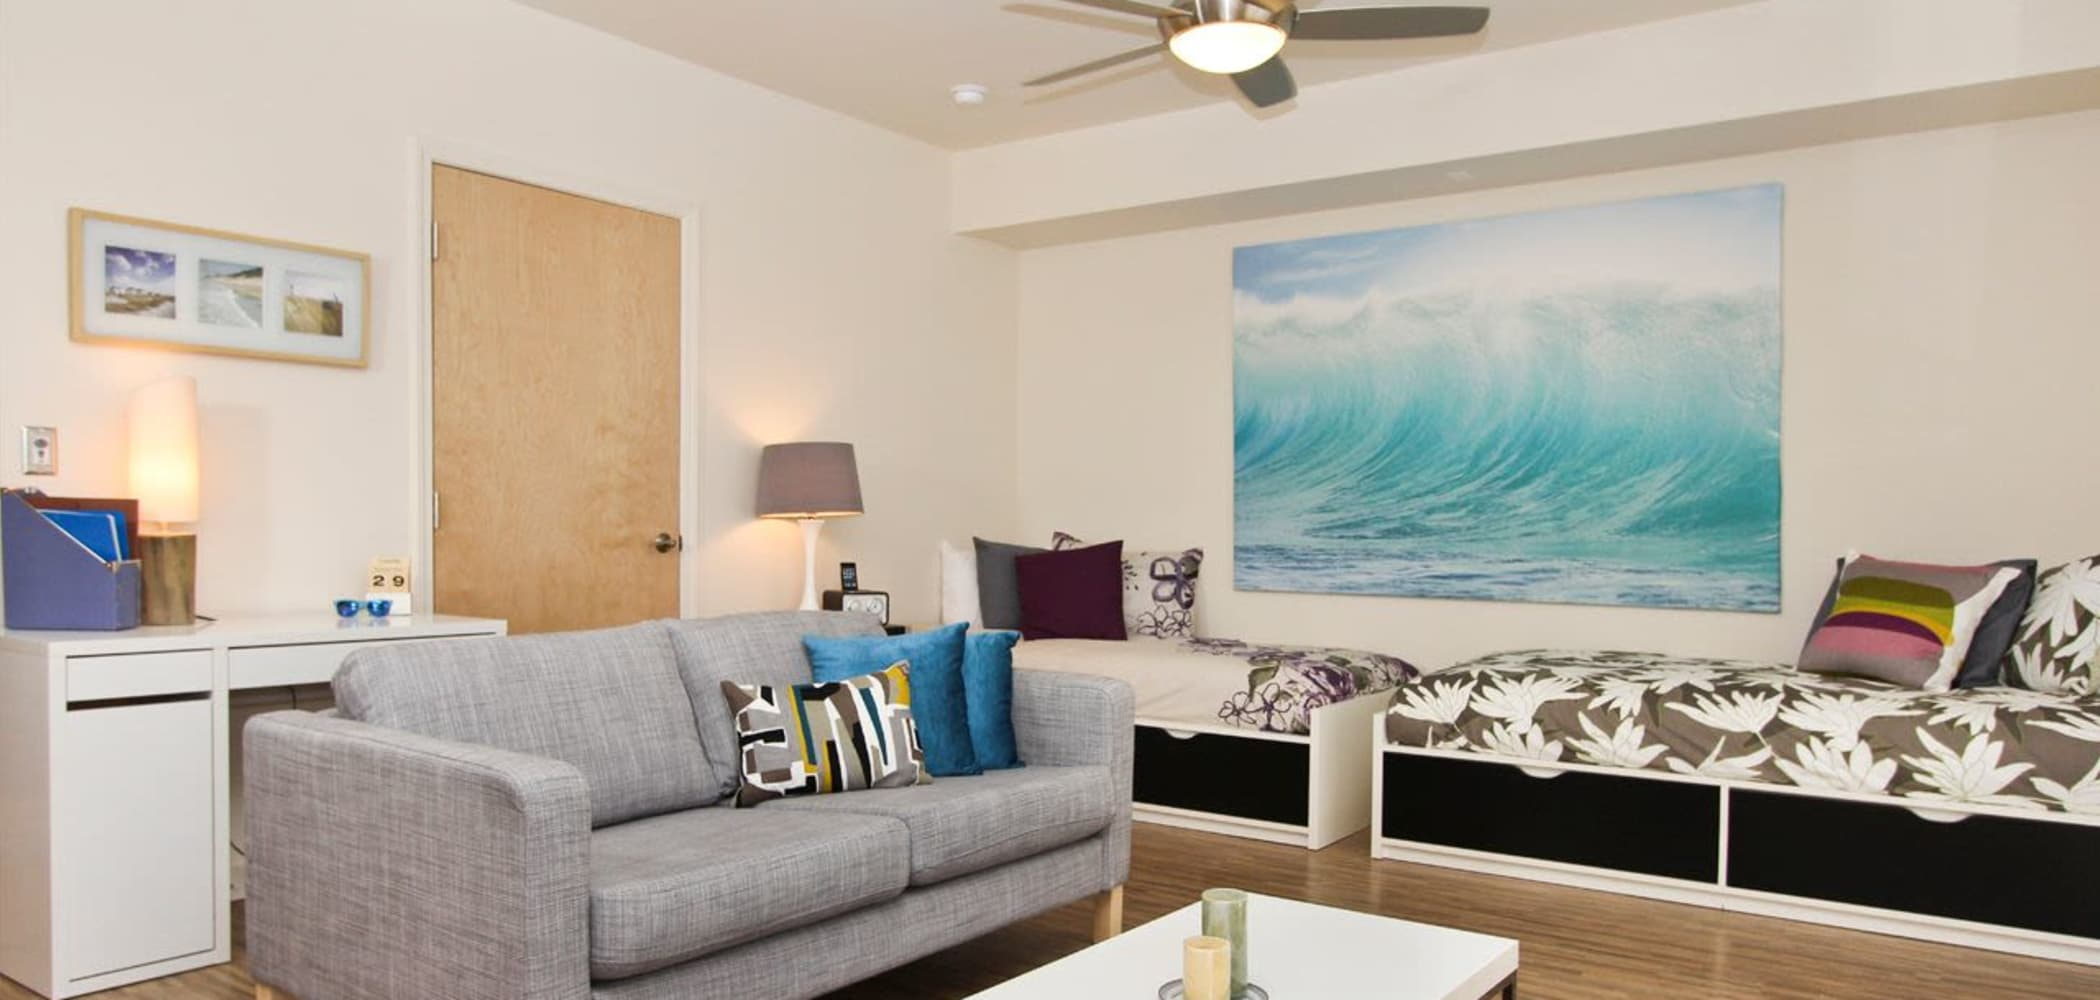 Well decorated living room at ICON in Isla Vista, California